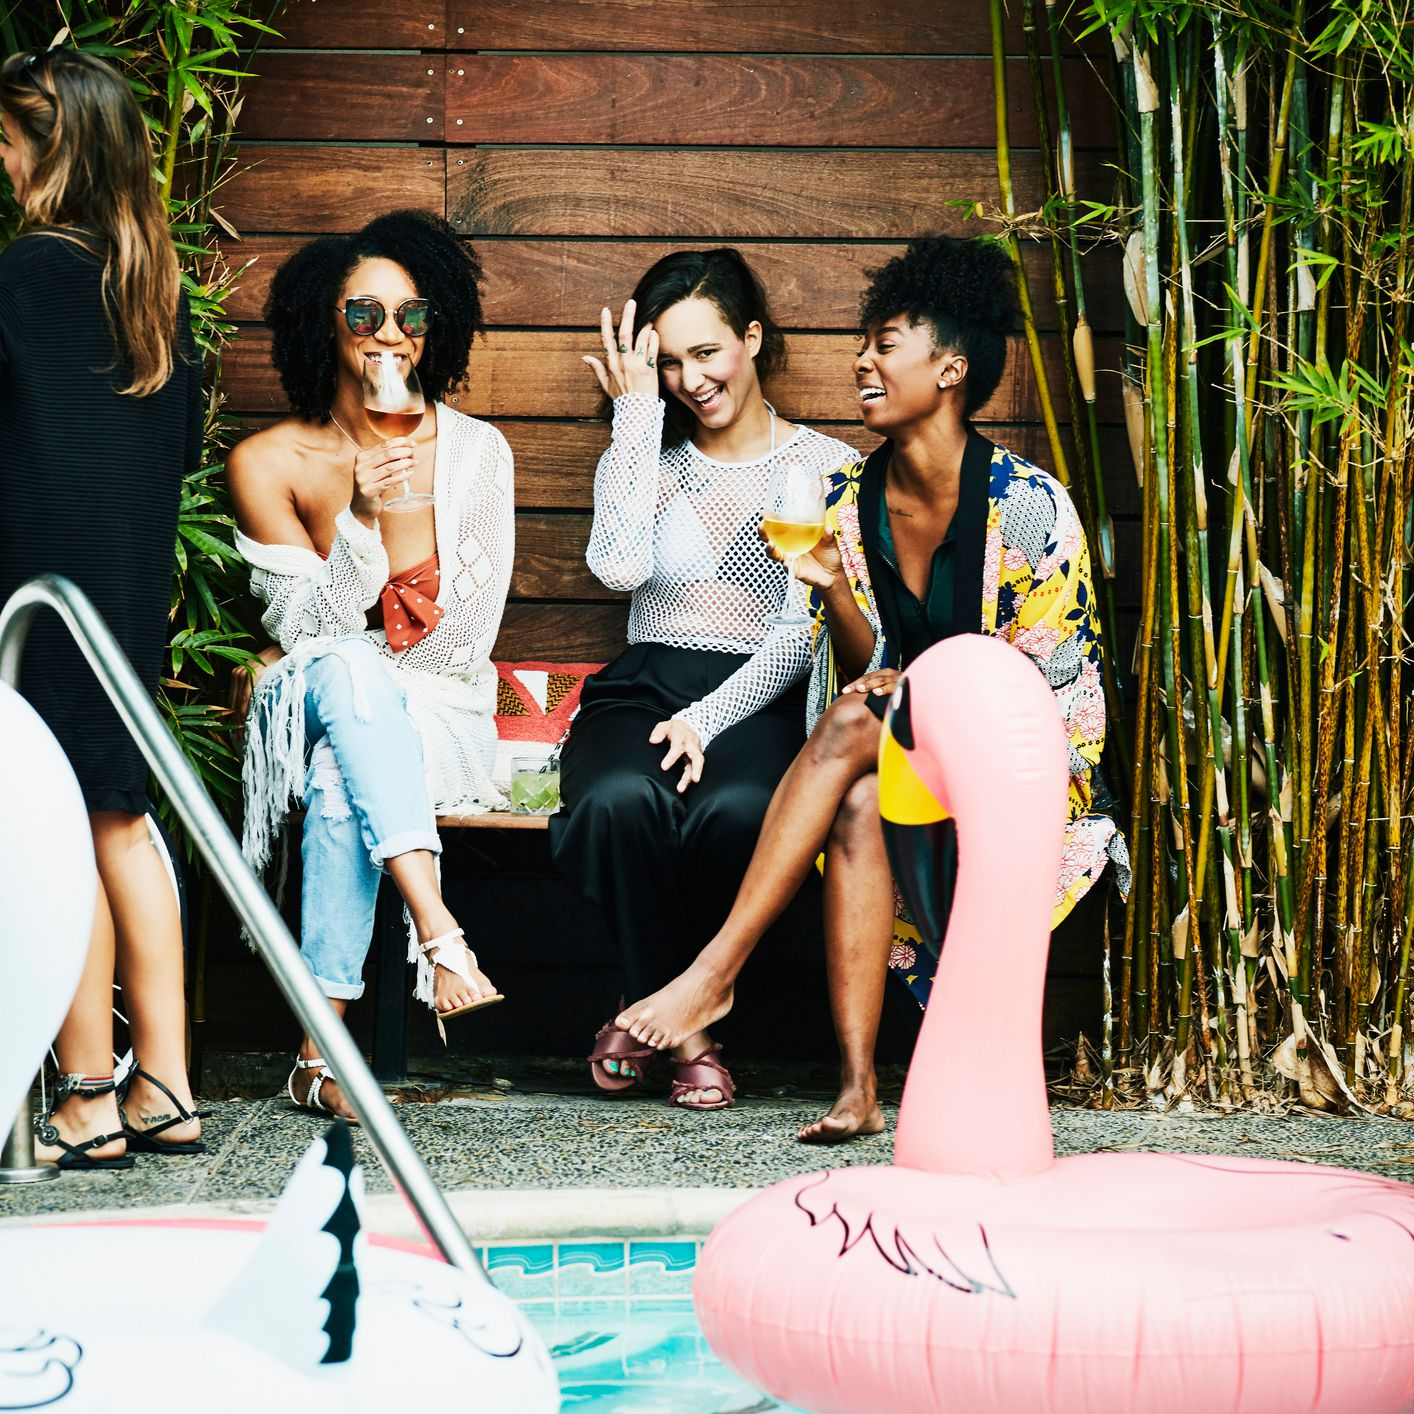 18 Bachelorette Party Ideas That Are Instagram Worthy